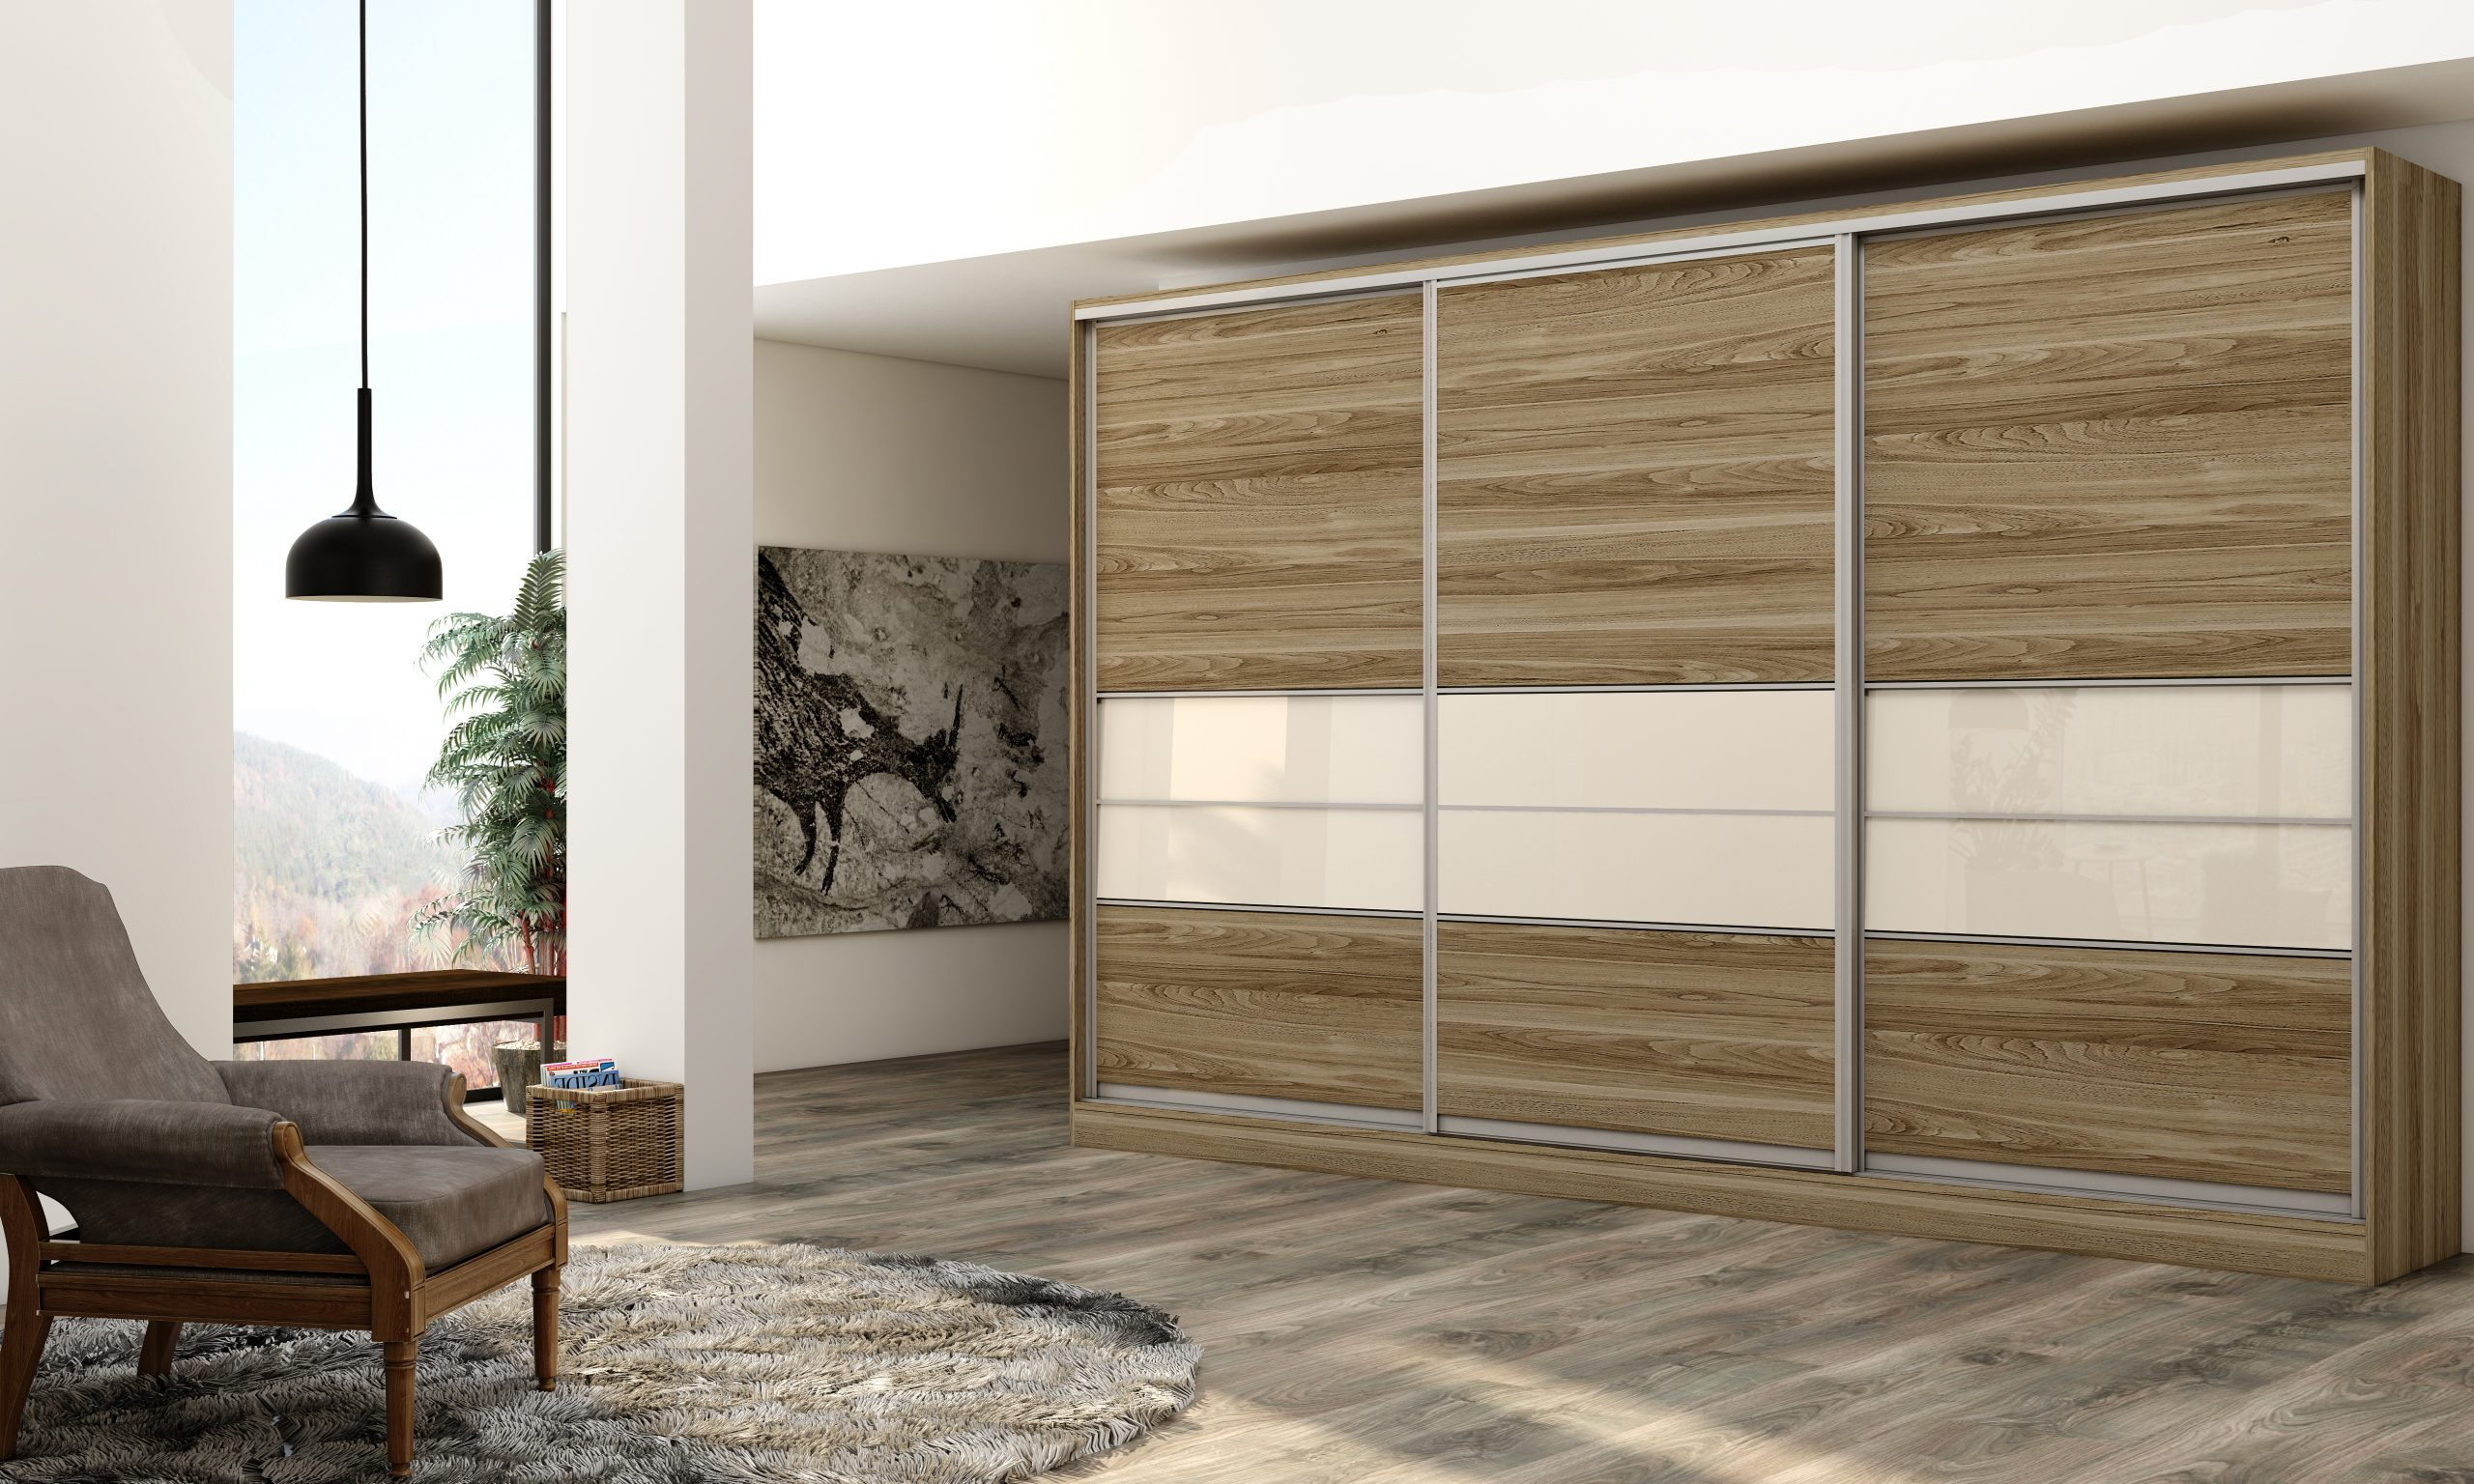 Wooden sliding Fitted Wardrobe with three panels in combination of wood grain and Cream finish